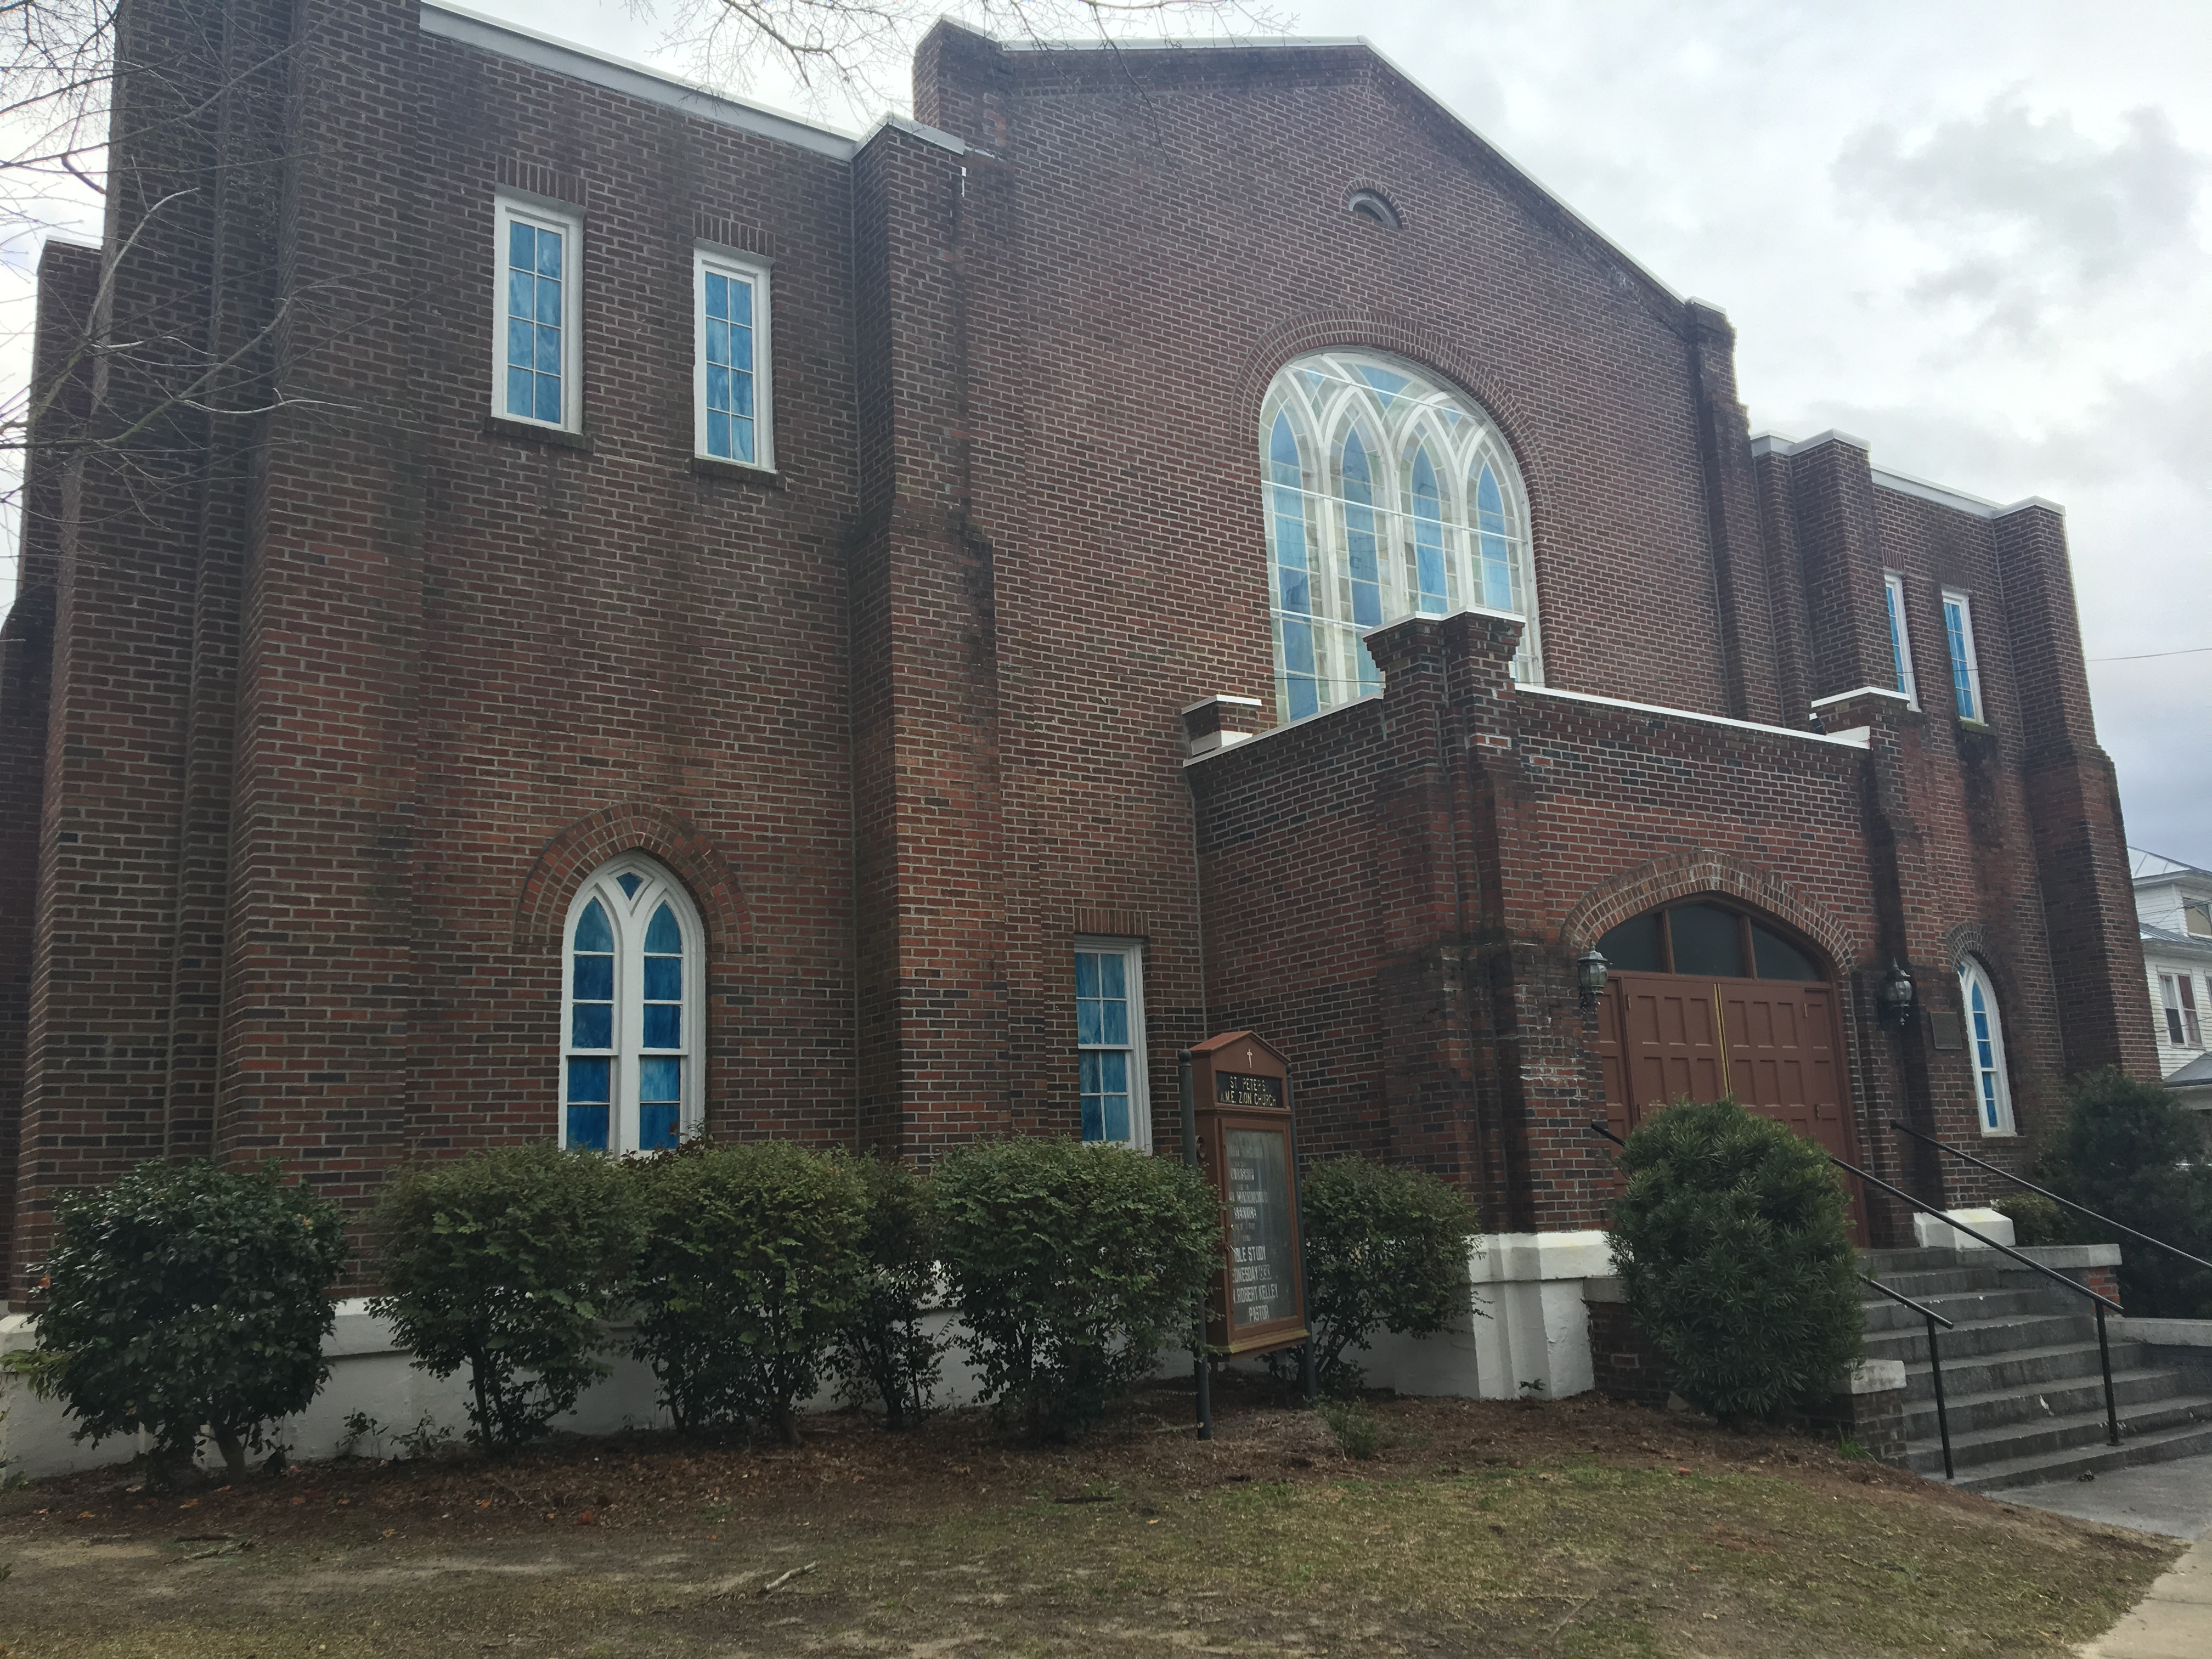 St. Peter's AME Zion Church in New Bern, North Carolina. The structure is gothic-style, constructed of bricks.